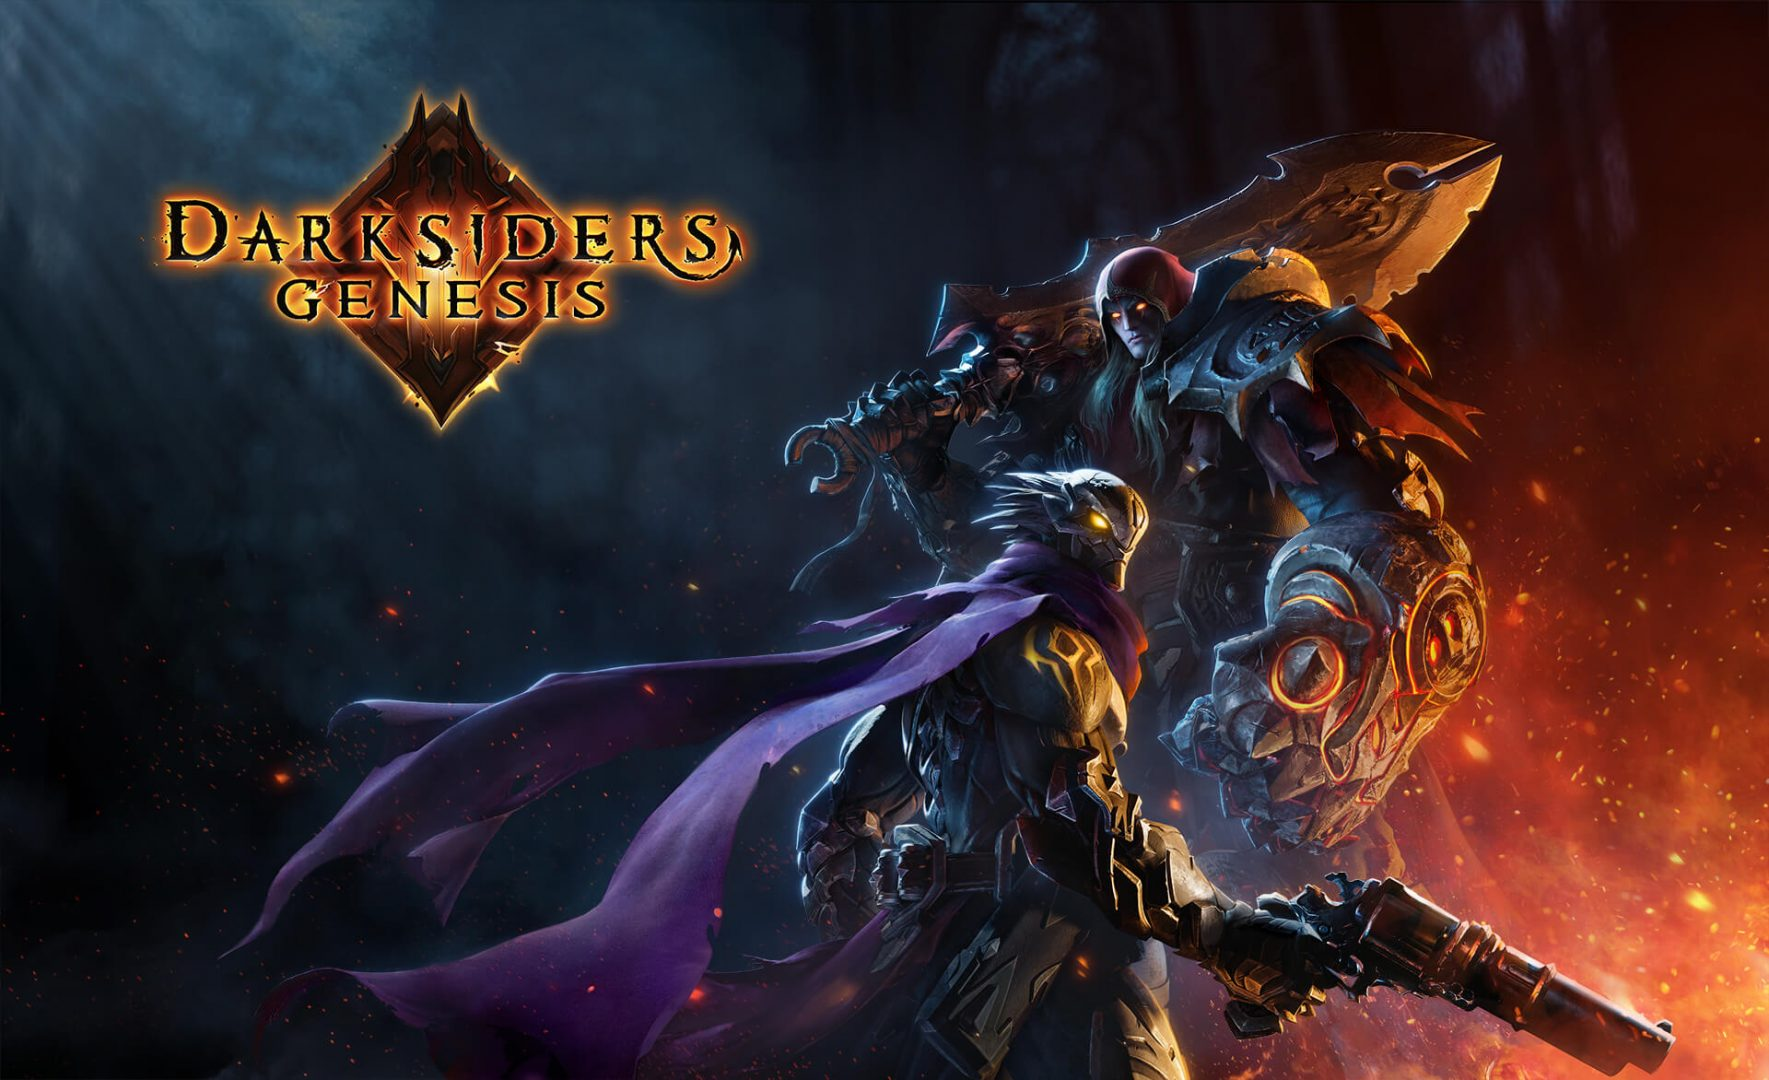 Darksiders Genesis Takes On Diablo In A New Direction For The Series